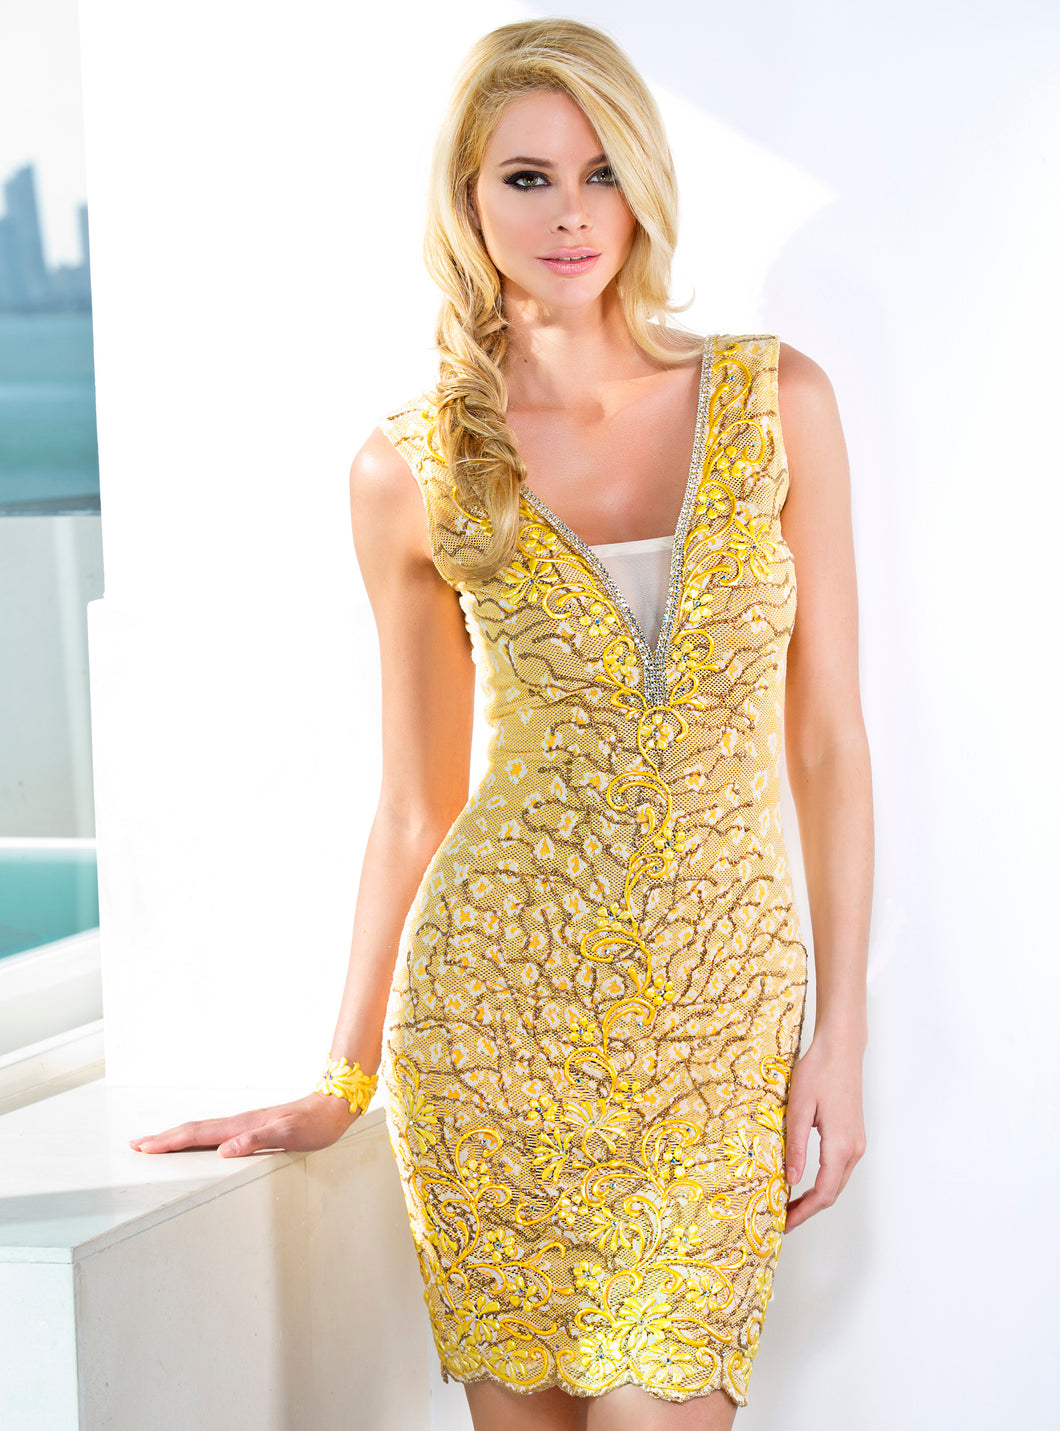 Valerie Yellow Short Dress - Cocktail Dress - BACCIO Couture